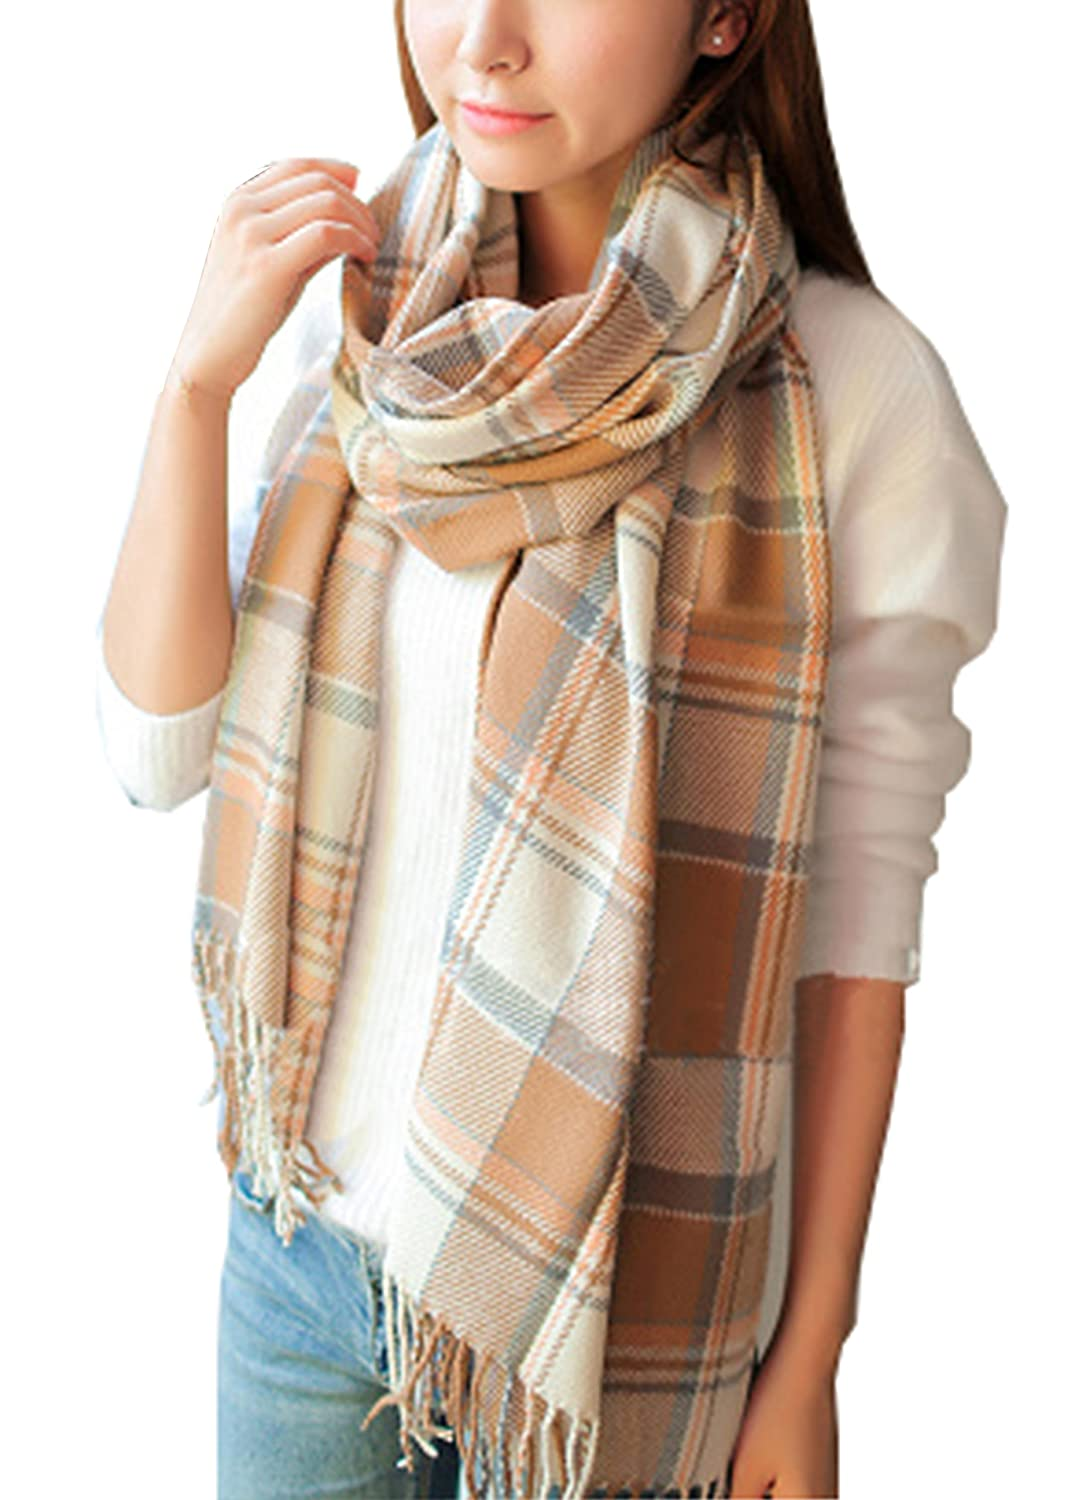 Women's scarves can form the organizing principle for an ensemble, tying together disparate colors with a unifying pattern, or they can form a counterpoint to your outfit's spirit, offering an eye-catching contrast.